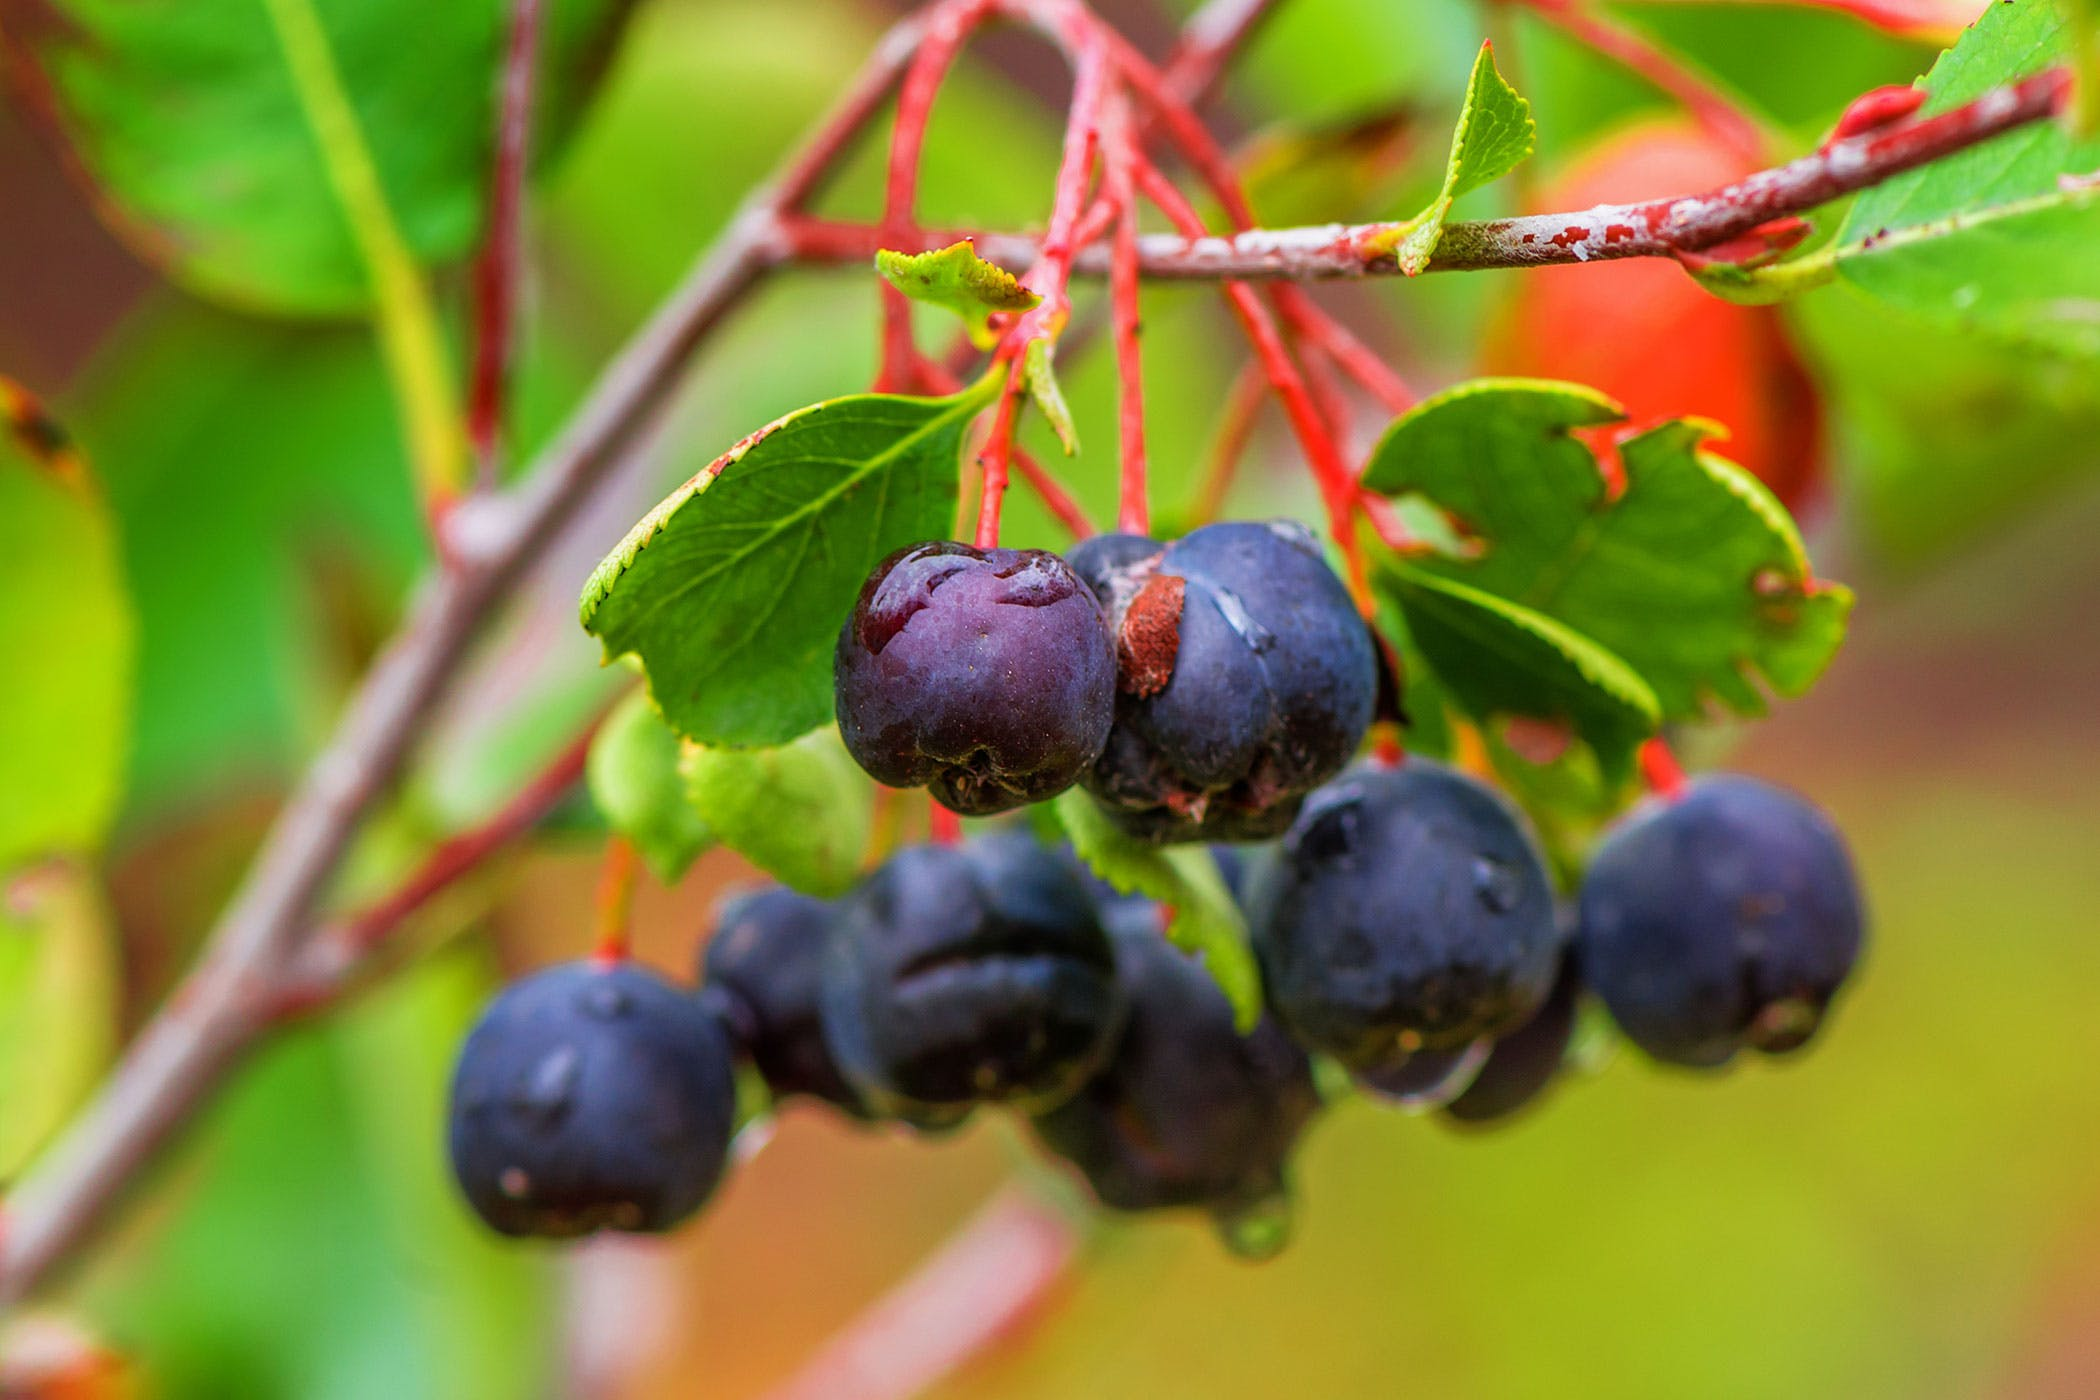 Black Cherry Tree Poisonous To Dogs